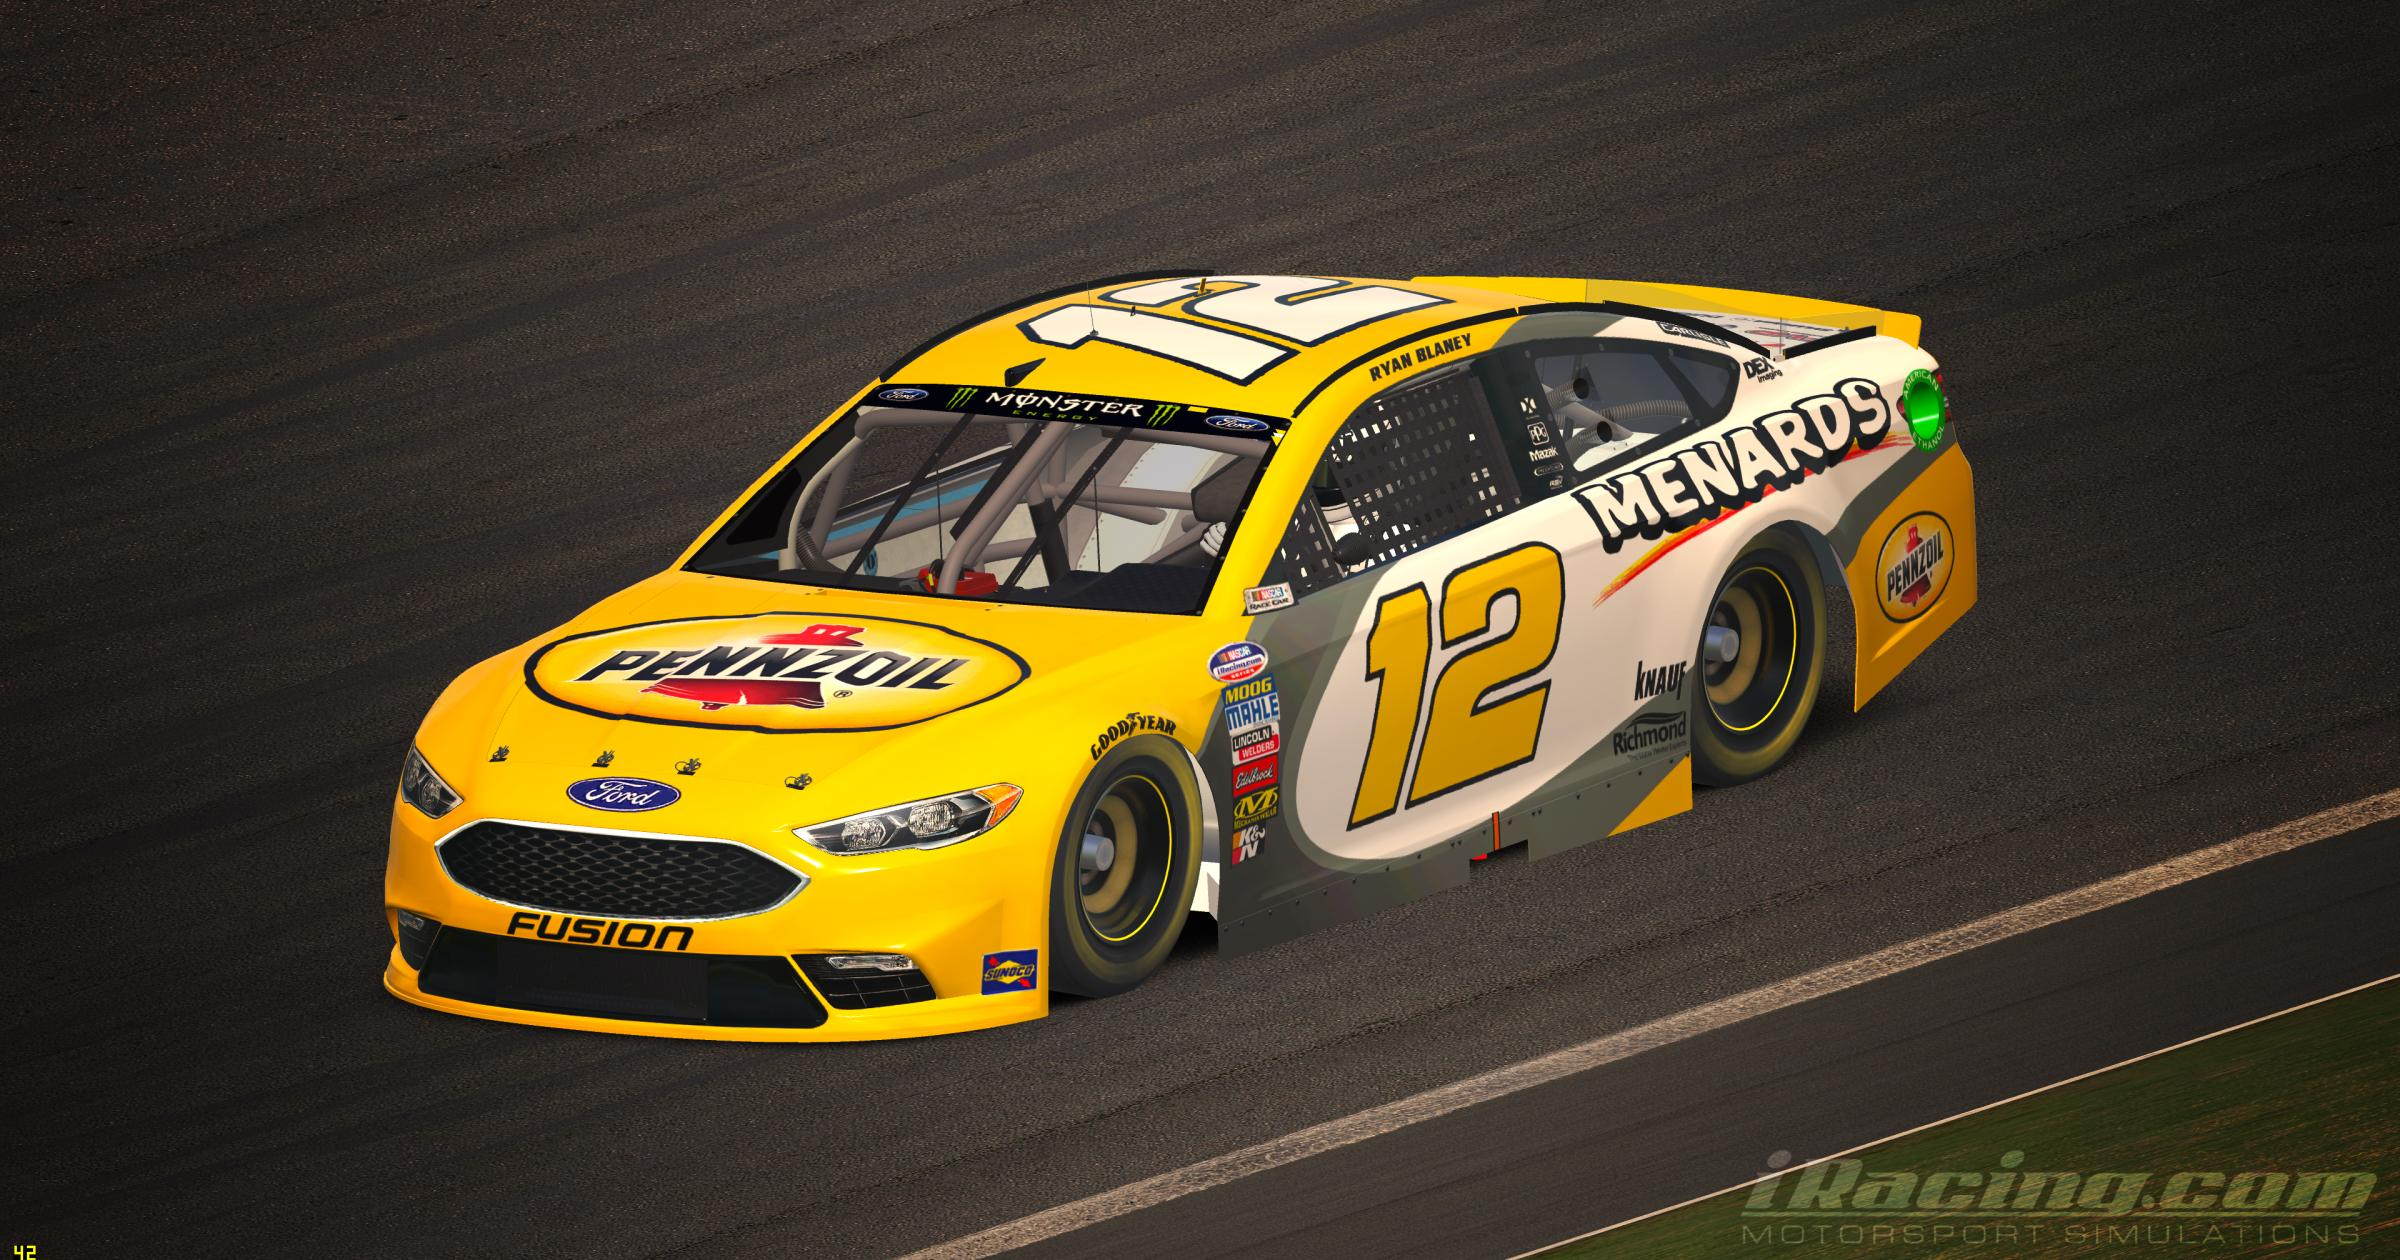 Preview of Ryan Blaney 2018 Pennzoil by Tyler King